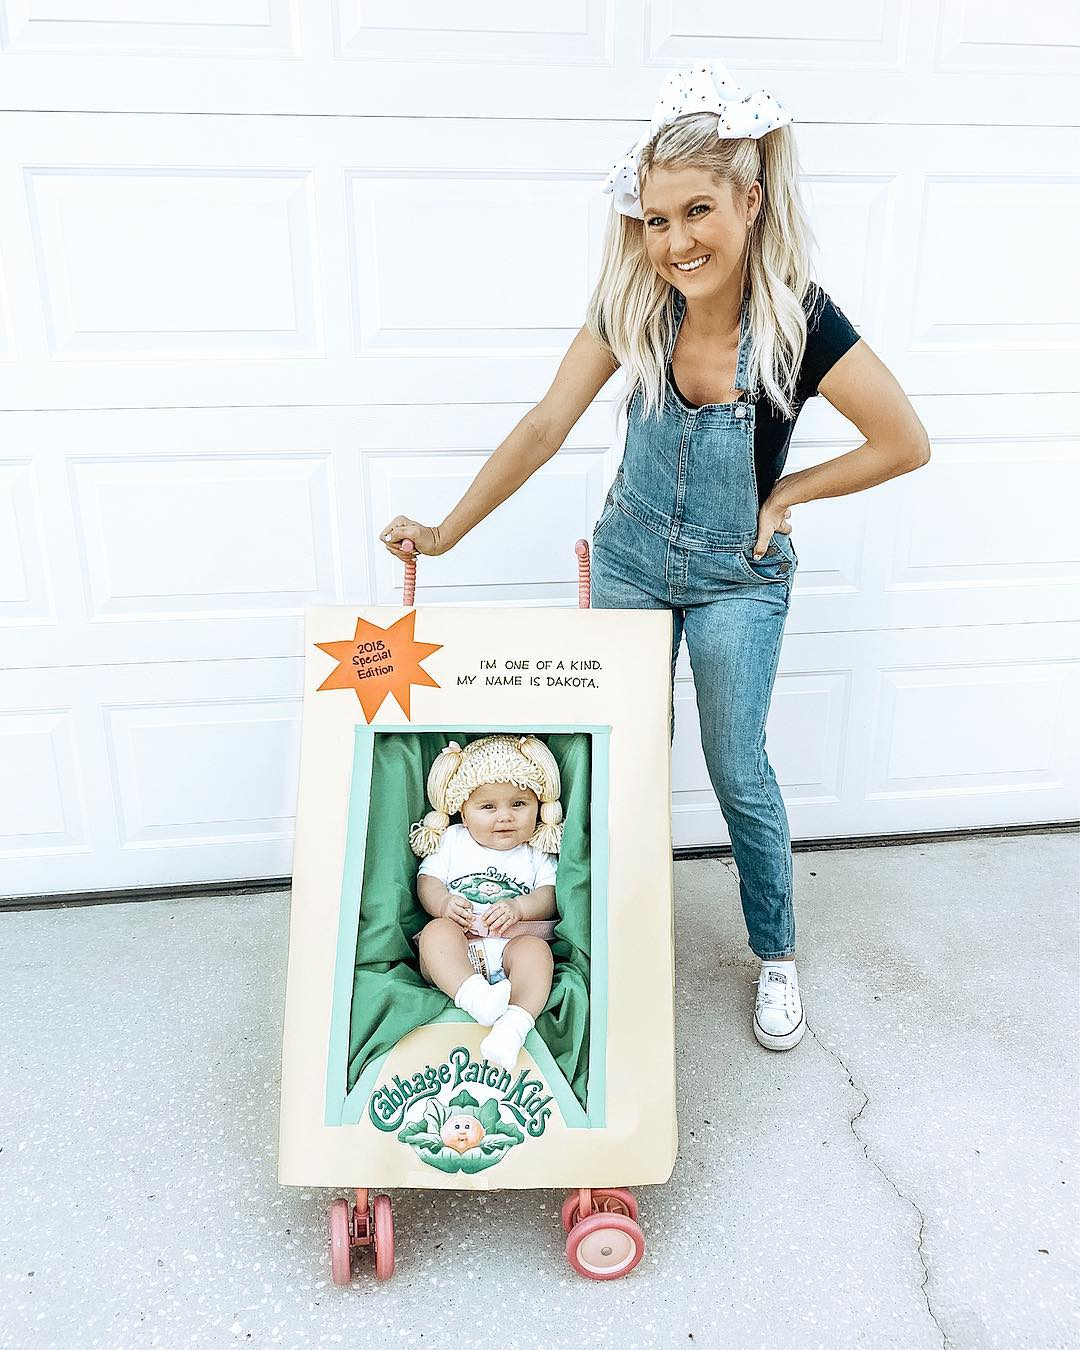 Cabbage Patch Doll Halloween Costume - Looking for cute, cheap, and easy Halloween costumes or unique last-minute, DIY Halloween costume ideas? Check out these 40 Creative Halloween Costume Ideas for women, moms, cute couples, small and large families, and best friends! You're sure to win the best Halloween costumes with these picks. #halloween #halloweencostumes #halloweencostumeideas #easycostumes